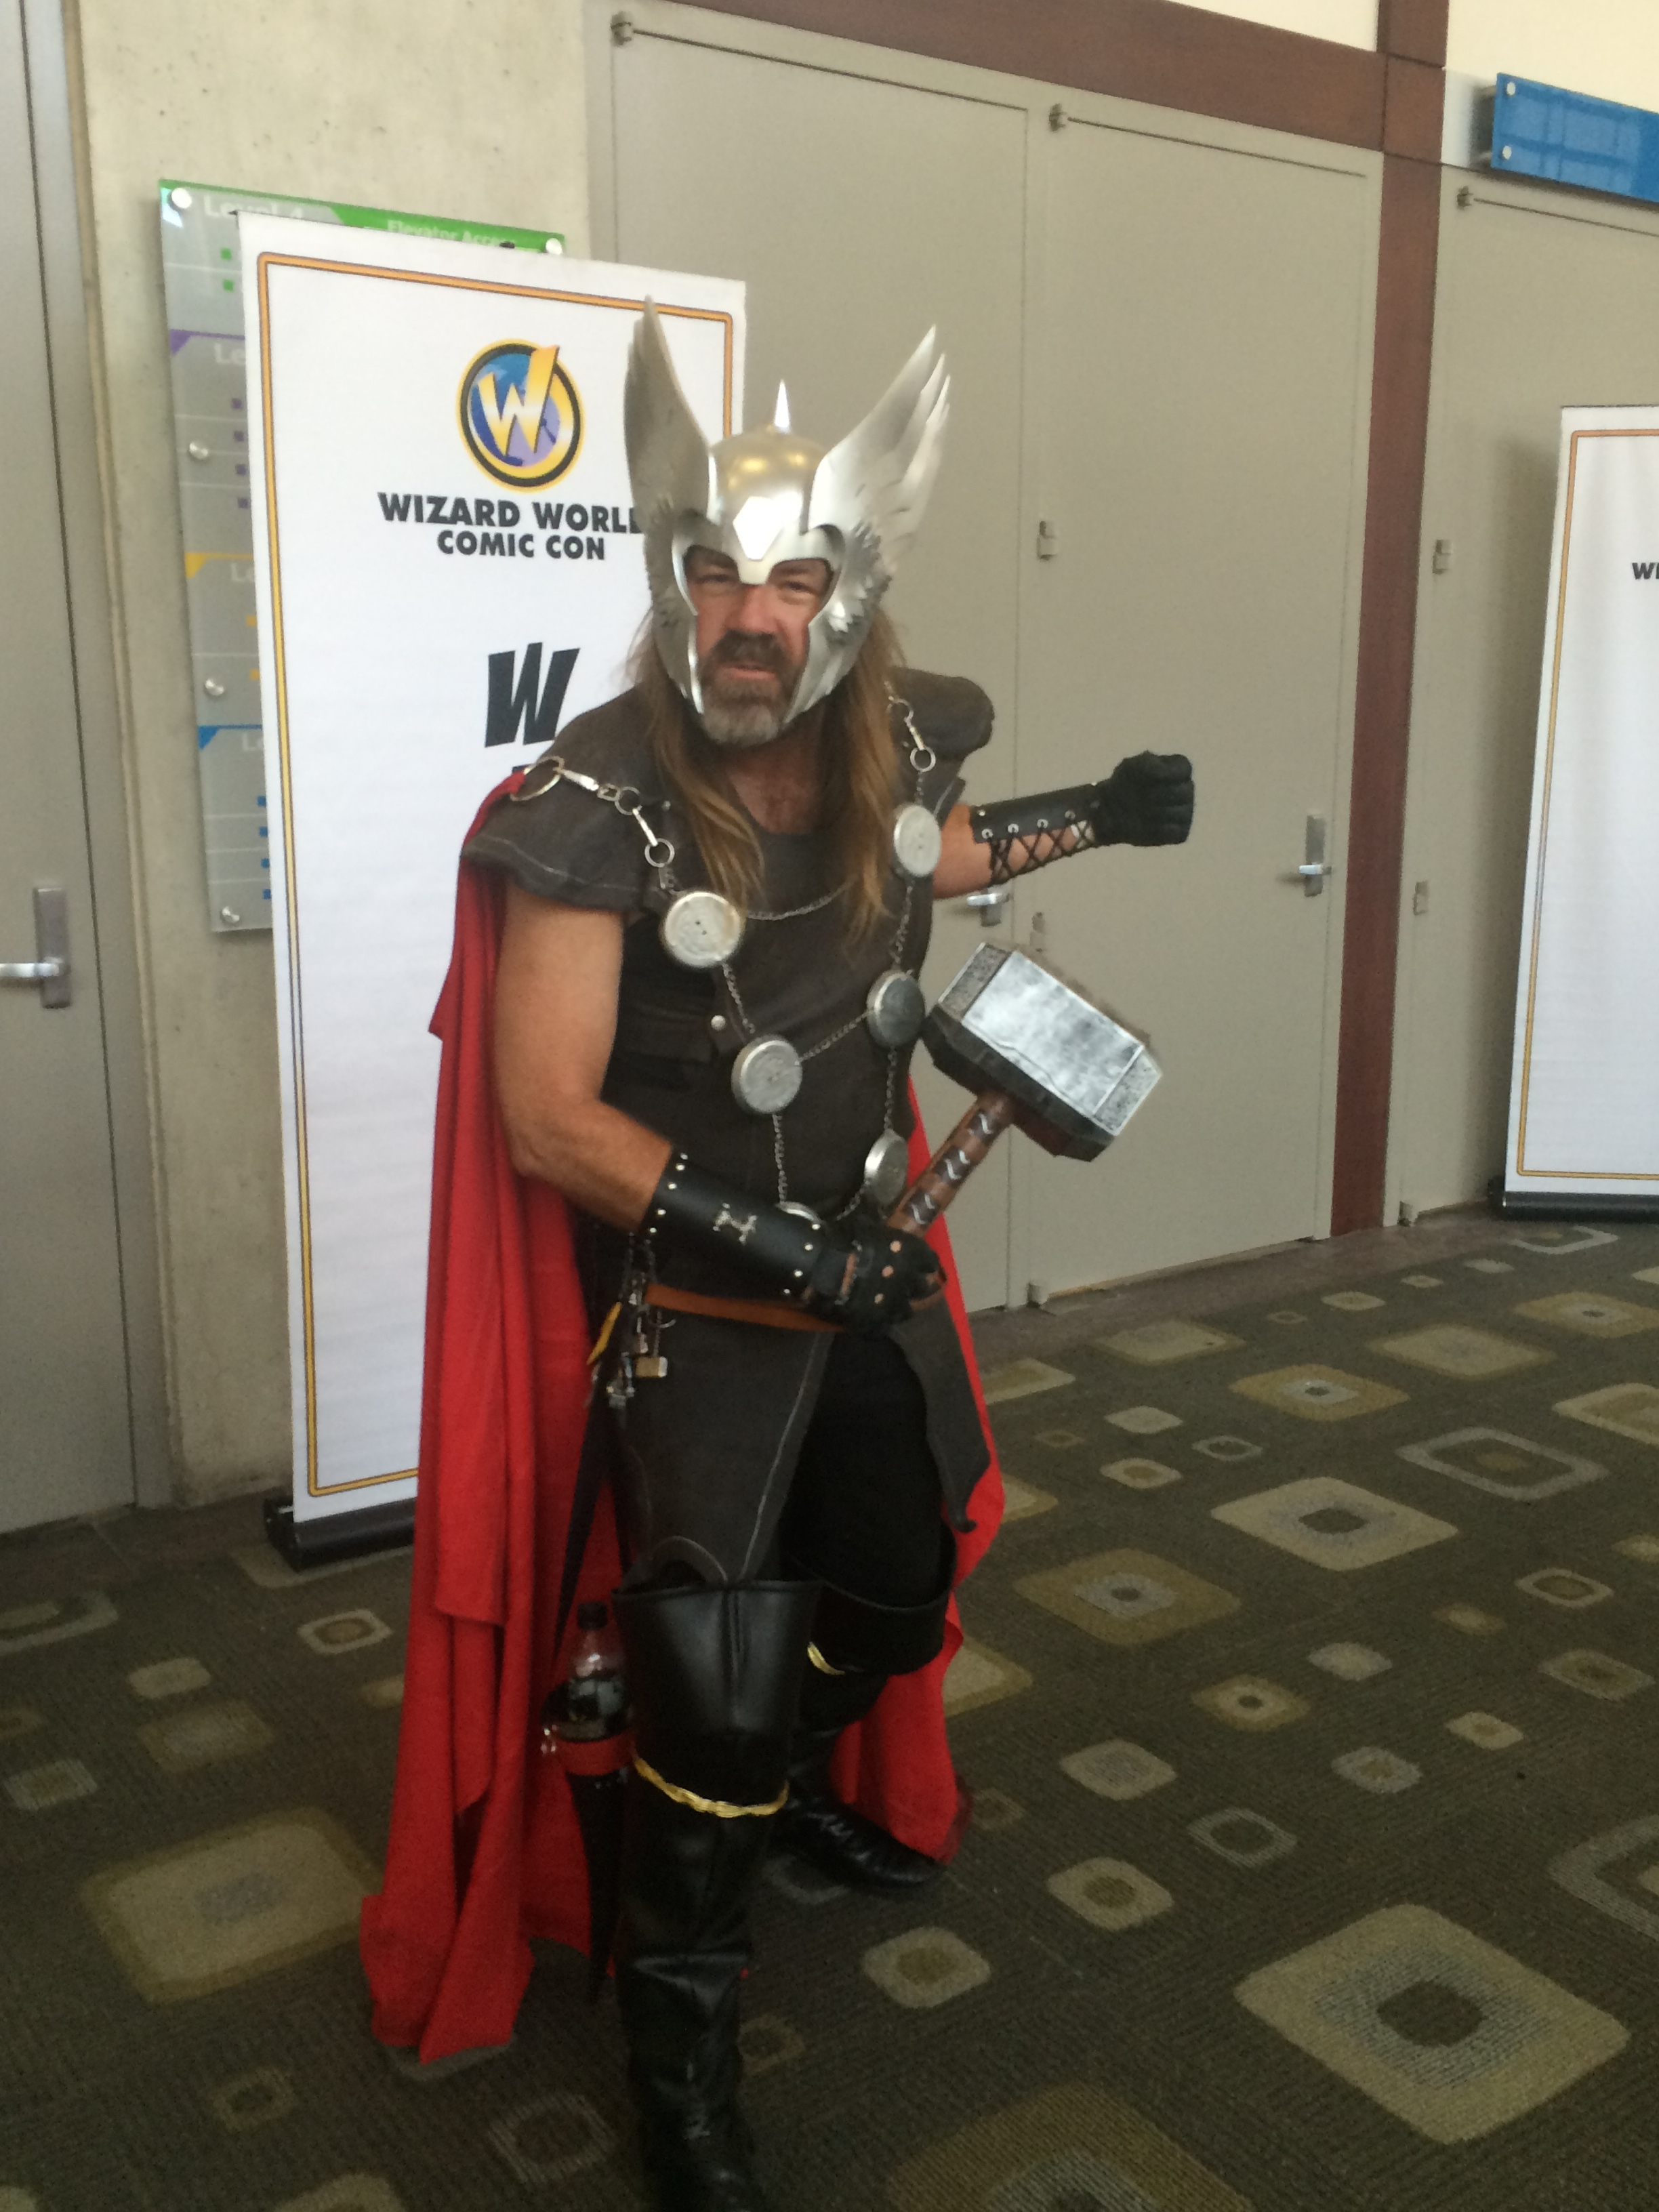 Thor at Comic Con <a href='http://aus.exprealty.com/index.php?types[]=1&types[]=2&areas[]=city:Austin&beds=0&baths=0&min=0&max=100000000&map=0&quick=1&submit=Search' title='Search Properties in Austin'>Austin</a> 2016